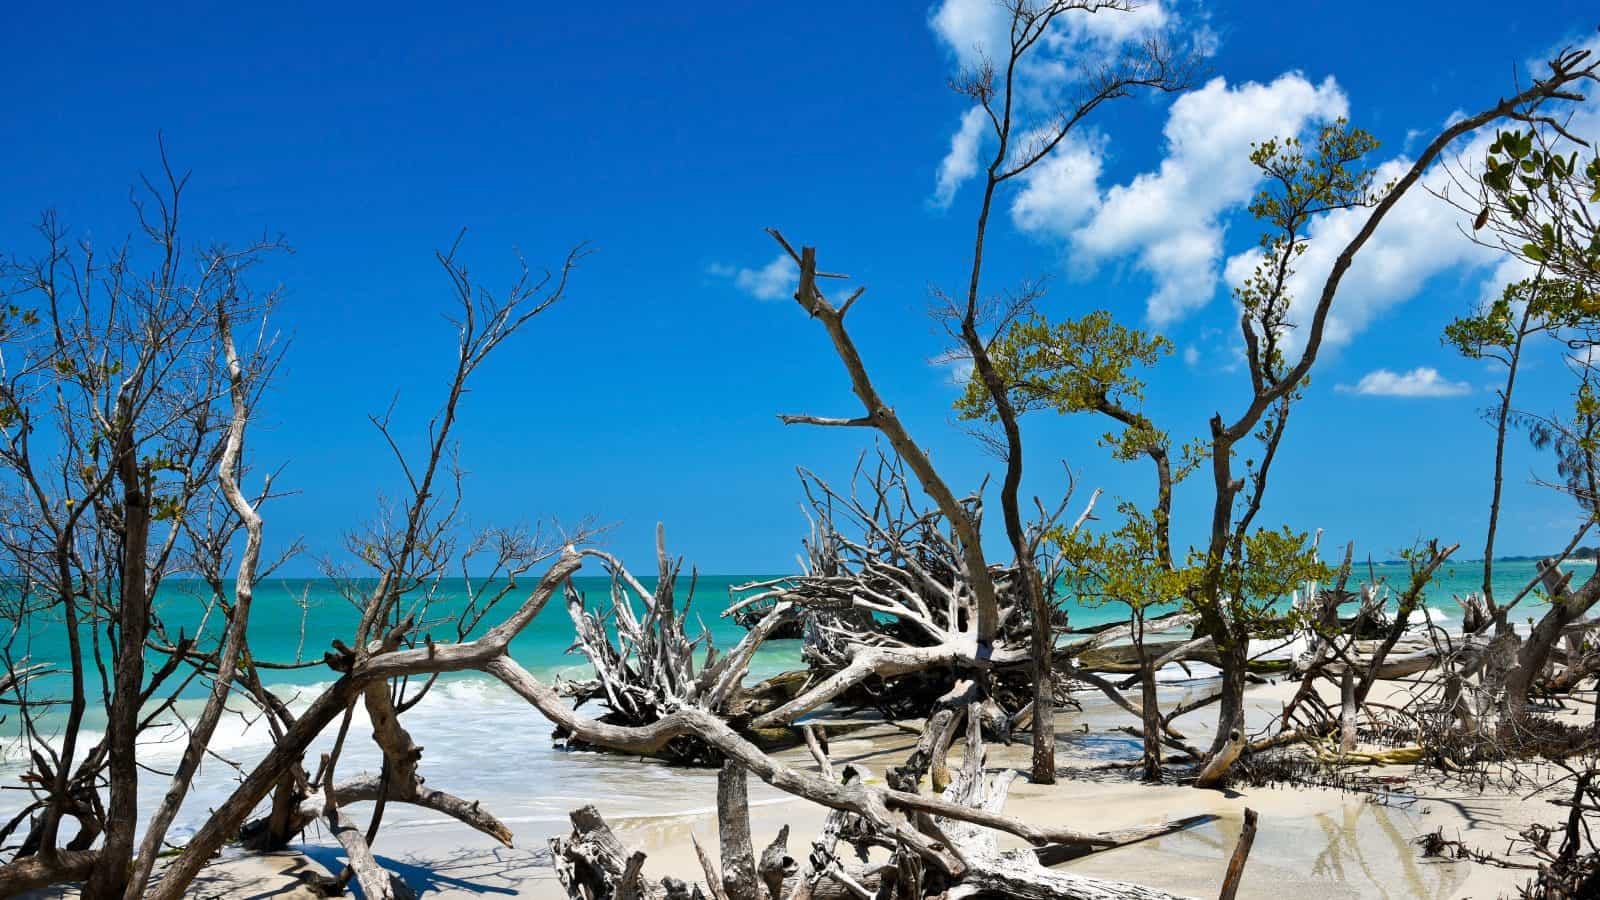 The downed trees and driftwood litter the beaches of Beer Can Island, one of the best things to do in Sarasota!